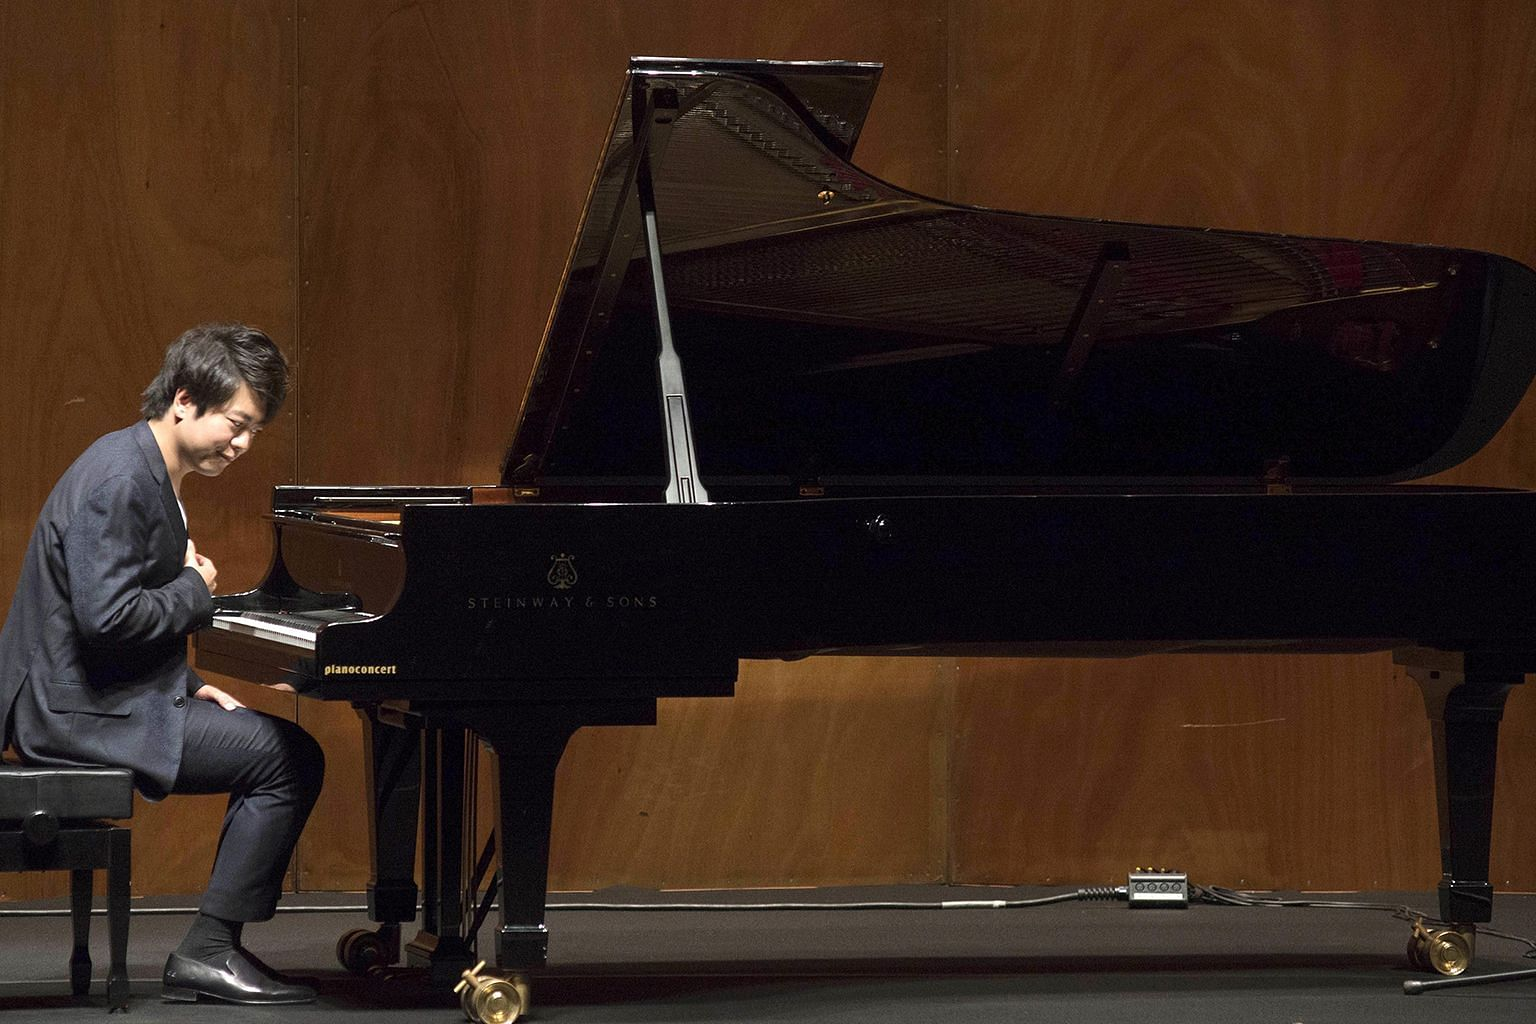 Steinway has pitched its pianos both as durable instruments and luxurious artifacts. It has recruited celebrities like Lang Lang, who is one of China's most prominent classical musicians and has a rock star flair, to offer endorsements, which carry s